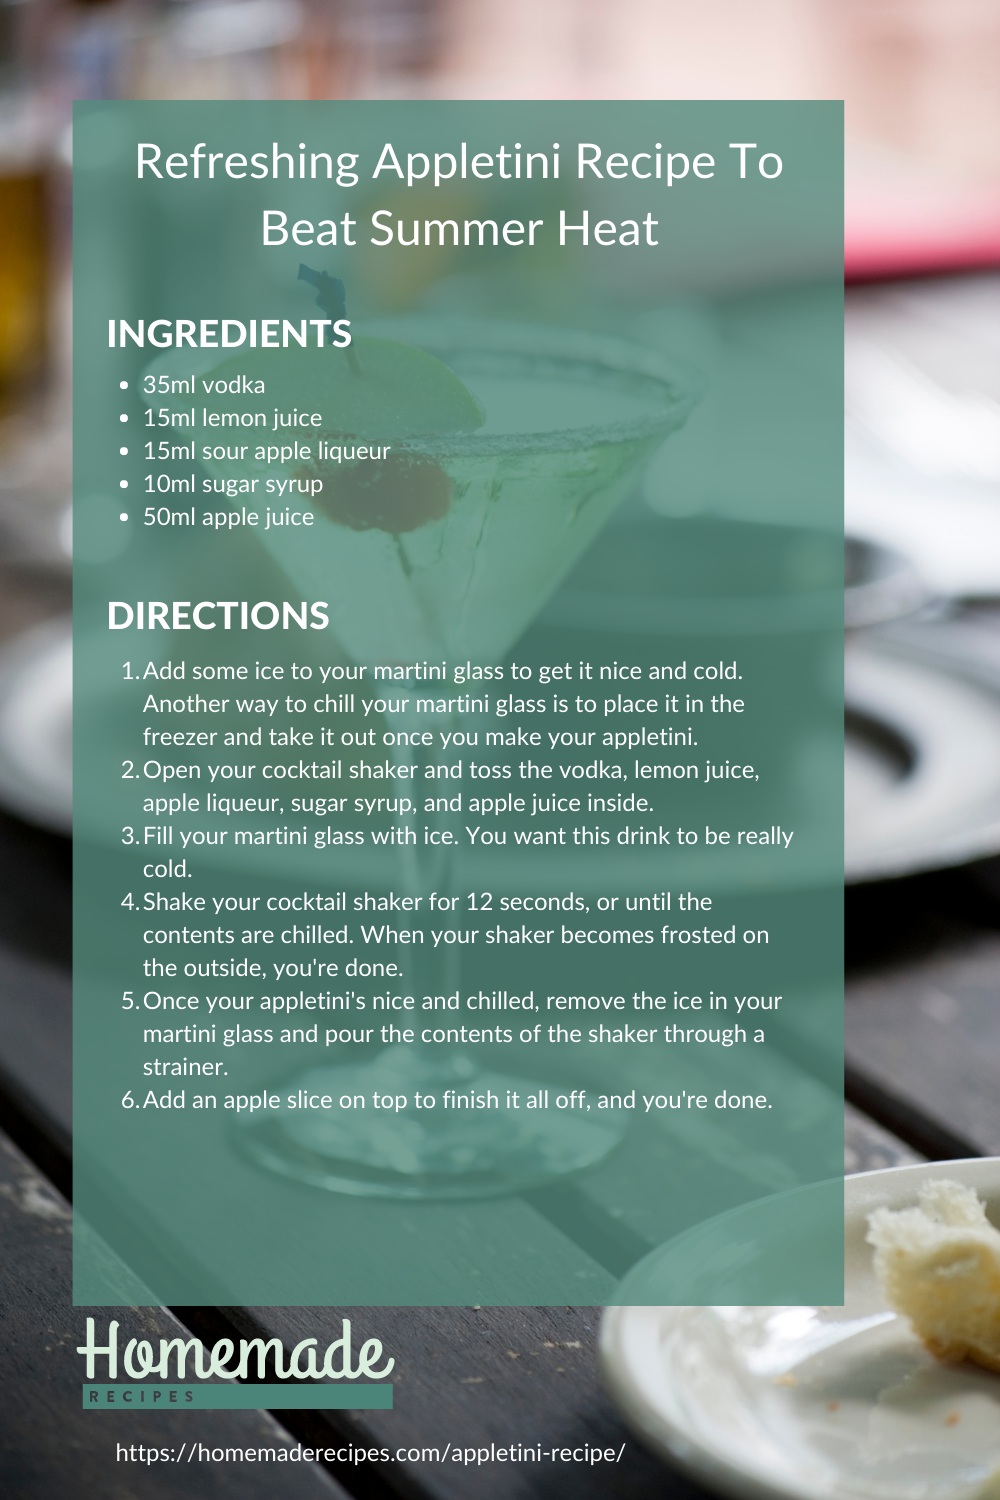 recipe card | Refreshing Appletini Recipe To Beat Summer Heat